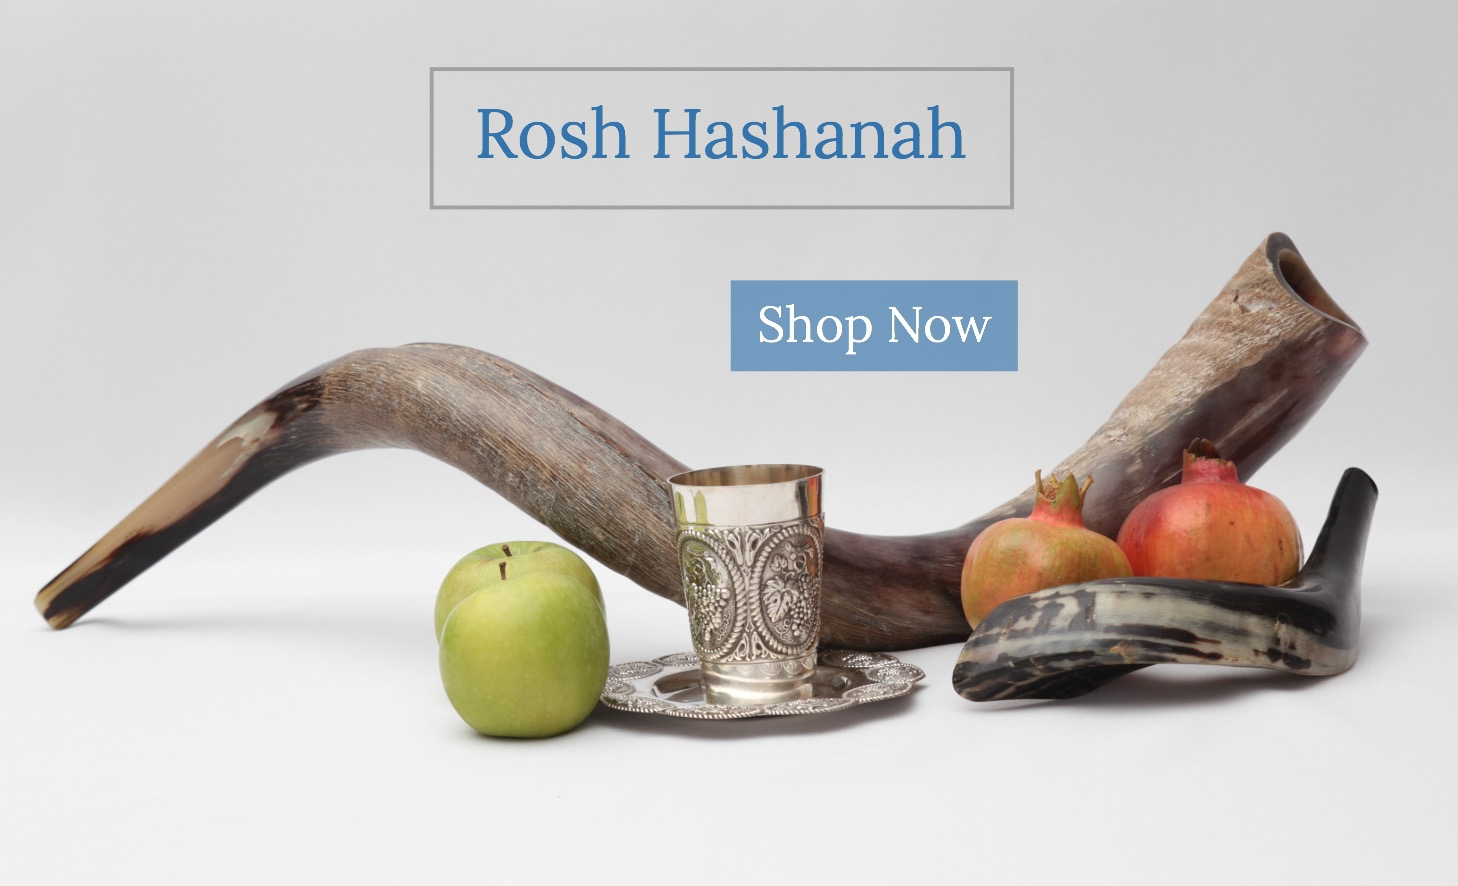 Rosh Hashanah Shop Now